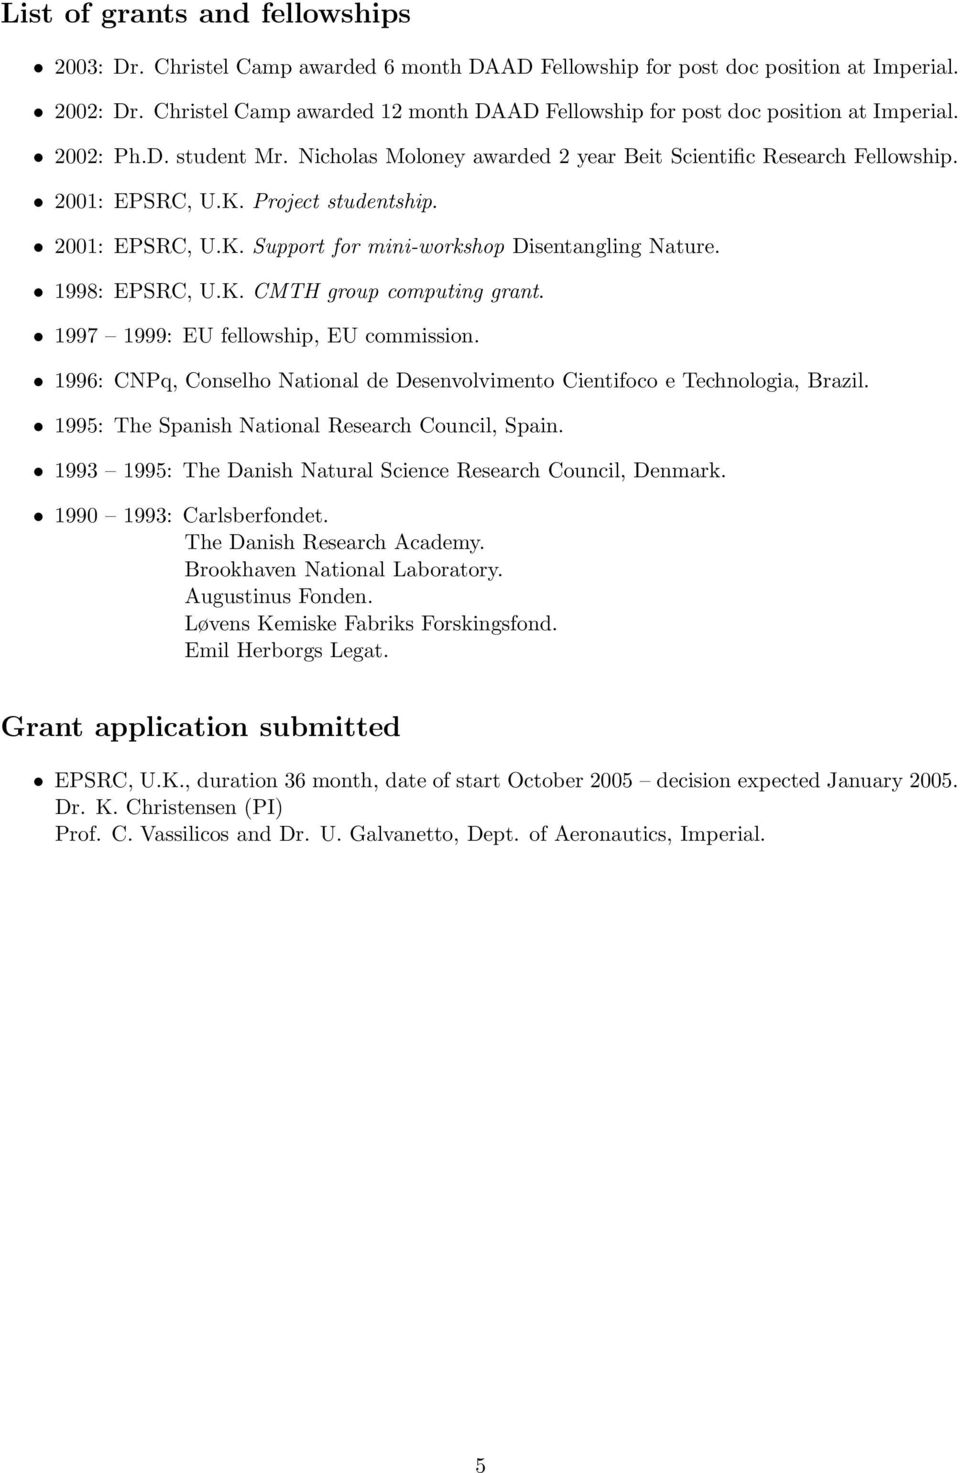 Project studentship. 2001: EPSRC, U.K. Support for mini-workshop Disentangling Nature. 1998: EPSRC, U.K. CMTH group computing grant. 1997 1999: EU fellowship, EU commission.